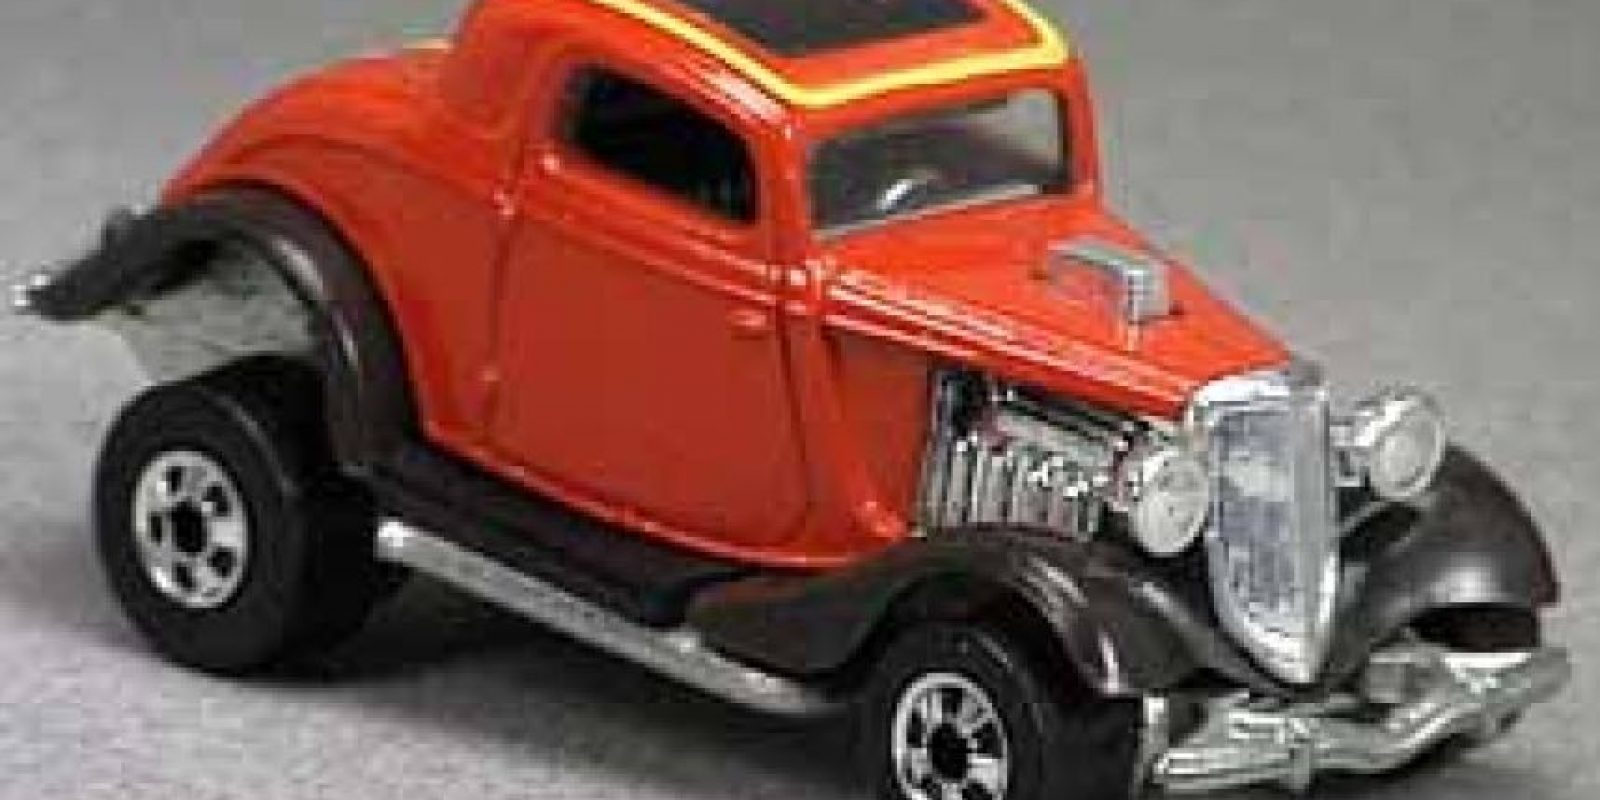 """3 Window 34"" Foto: Hotwheels.wikia.com"